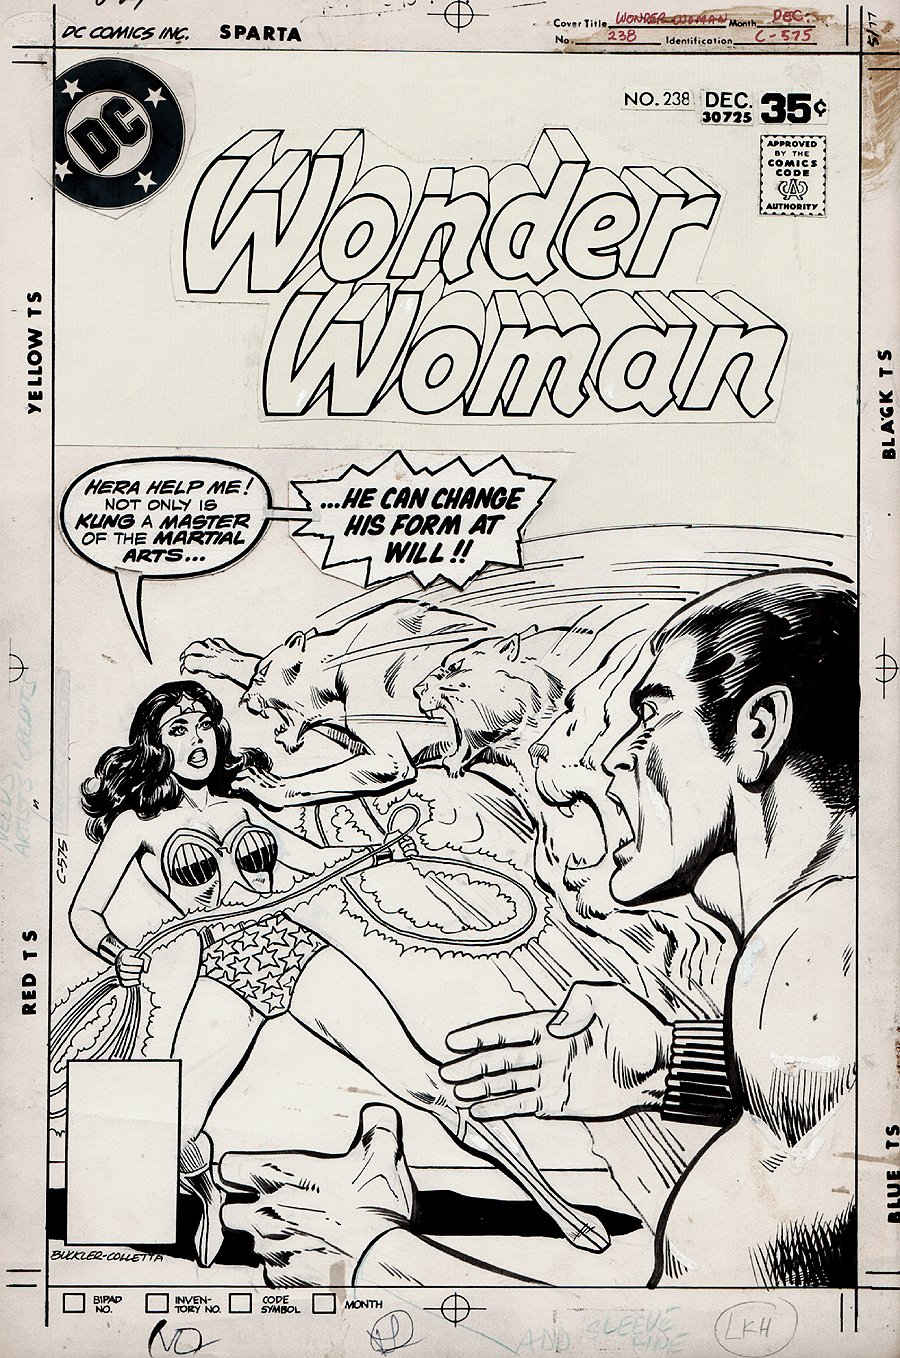 Wonder Woman #238 Unpublished Cover (1977)